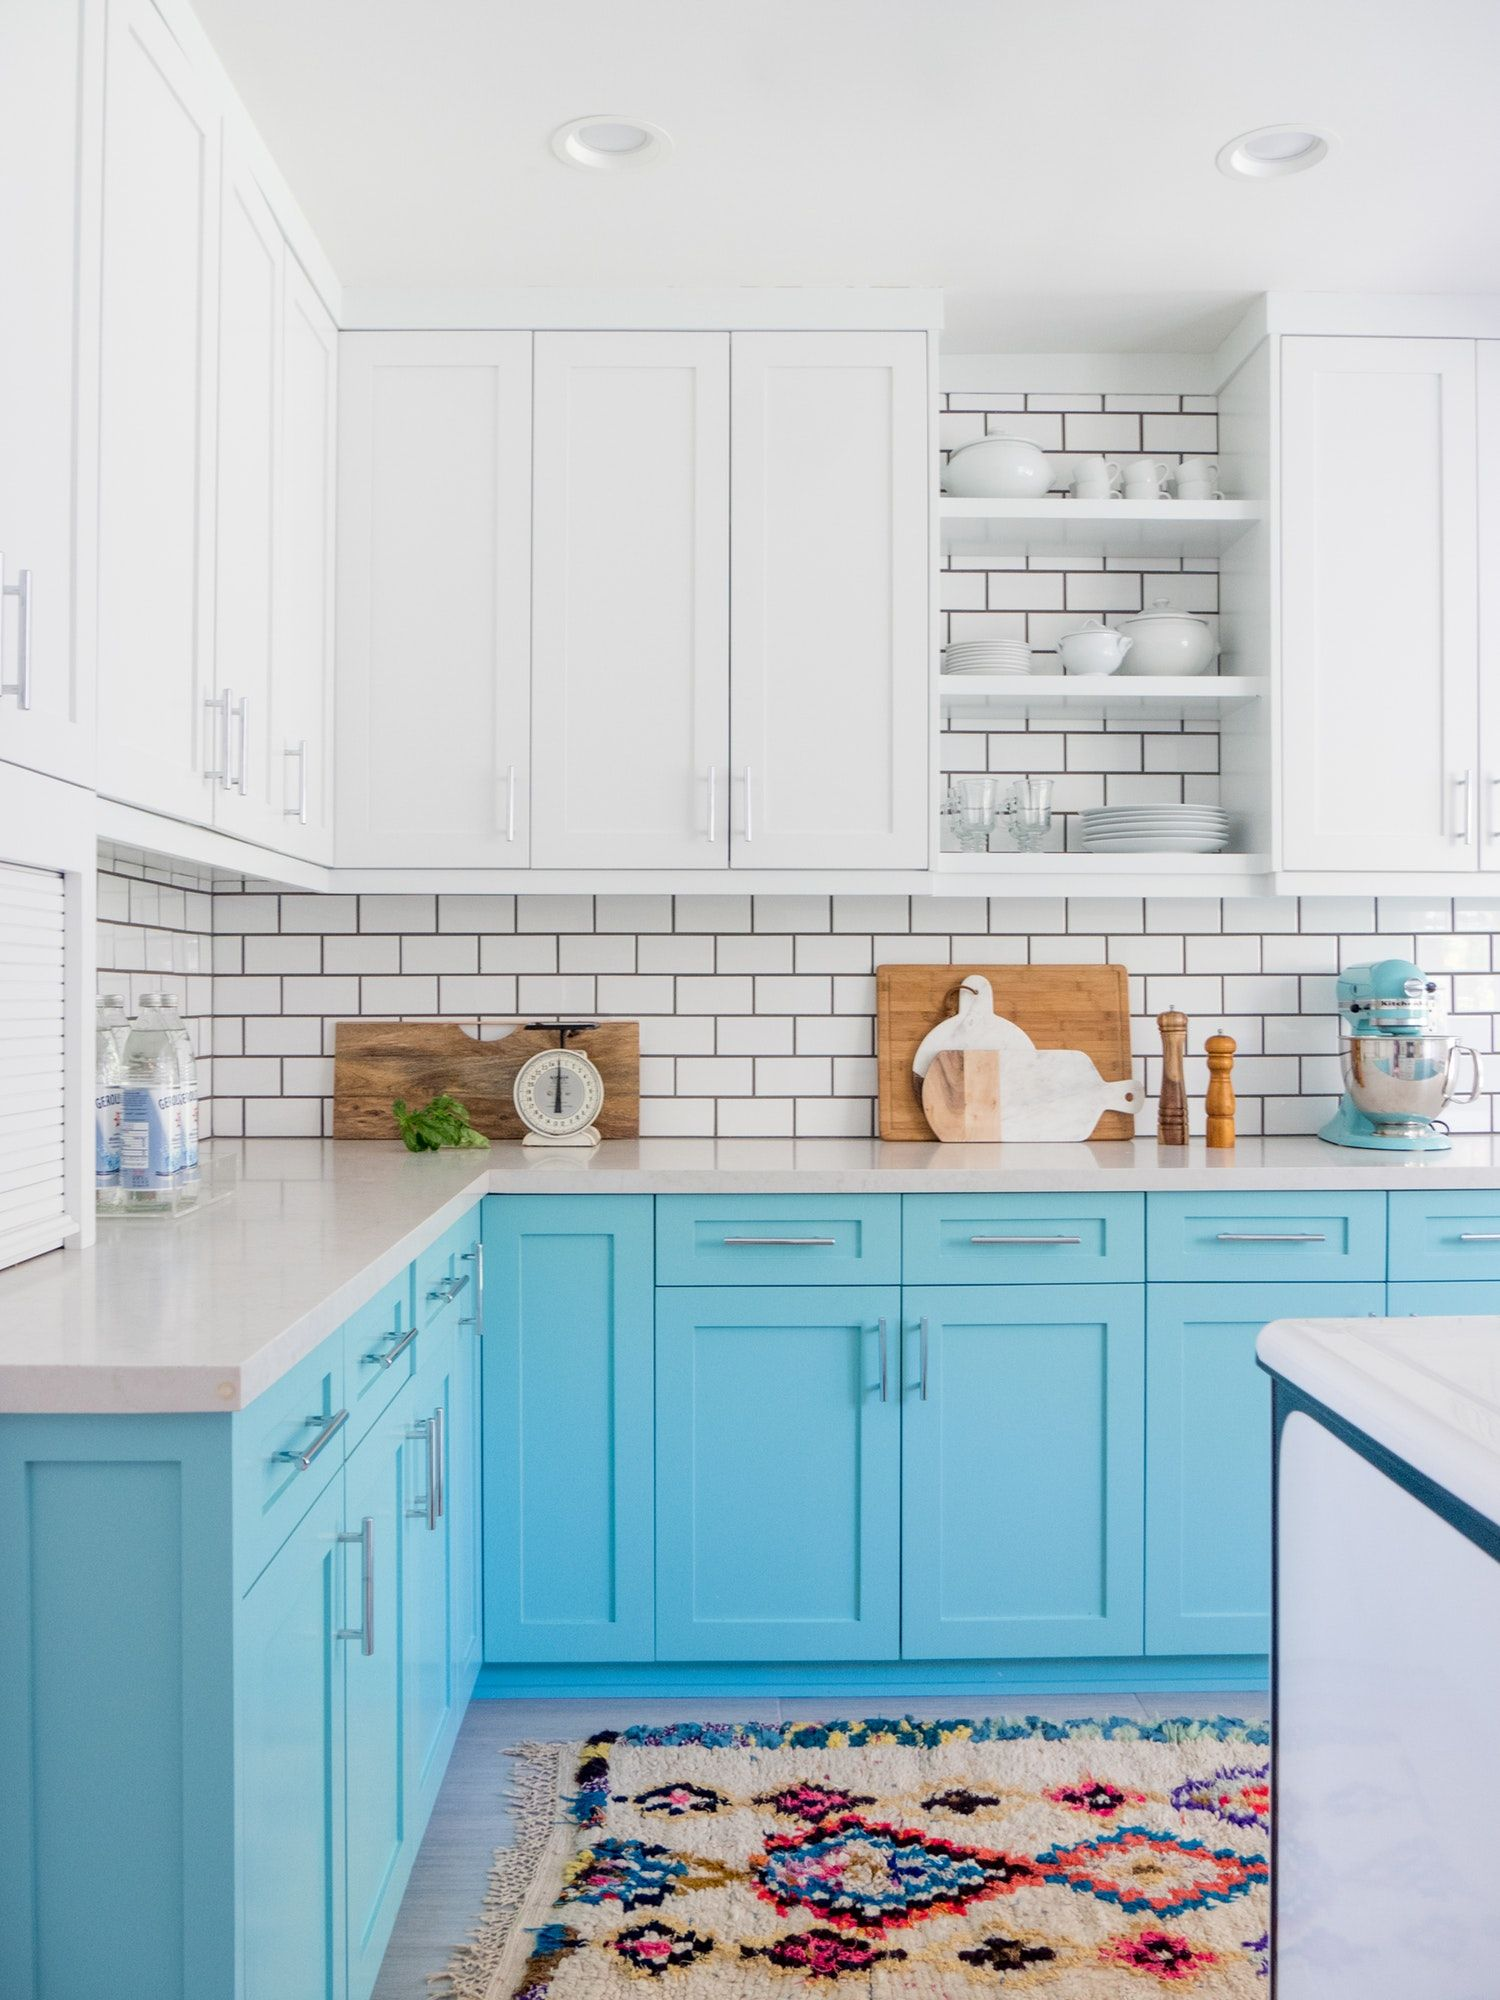 3 Smart Ways to Make the Most of Your Corner Cabinets | Pinterest ...